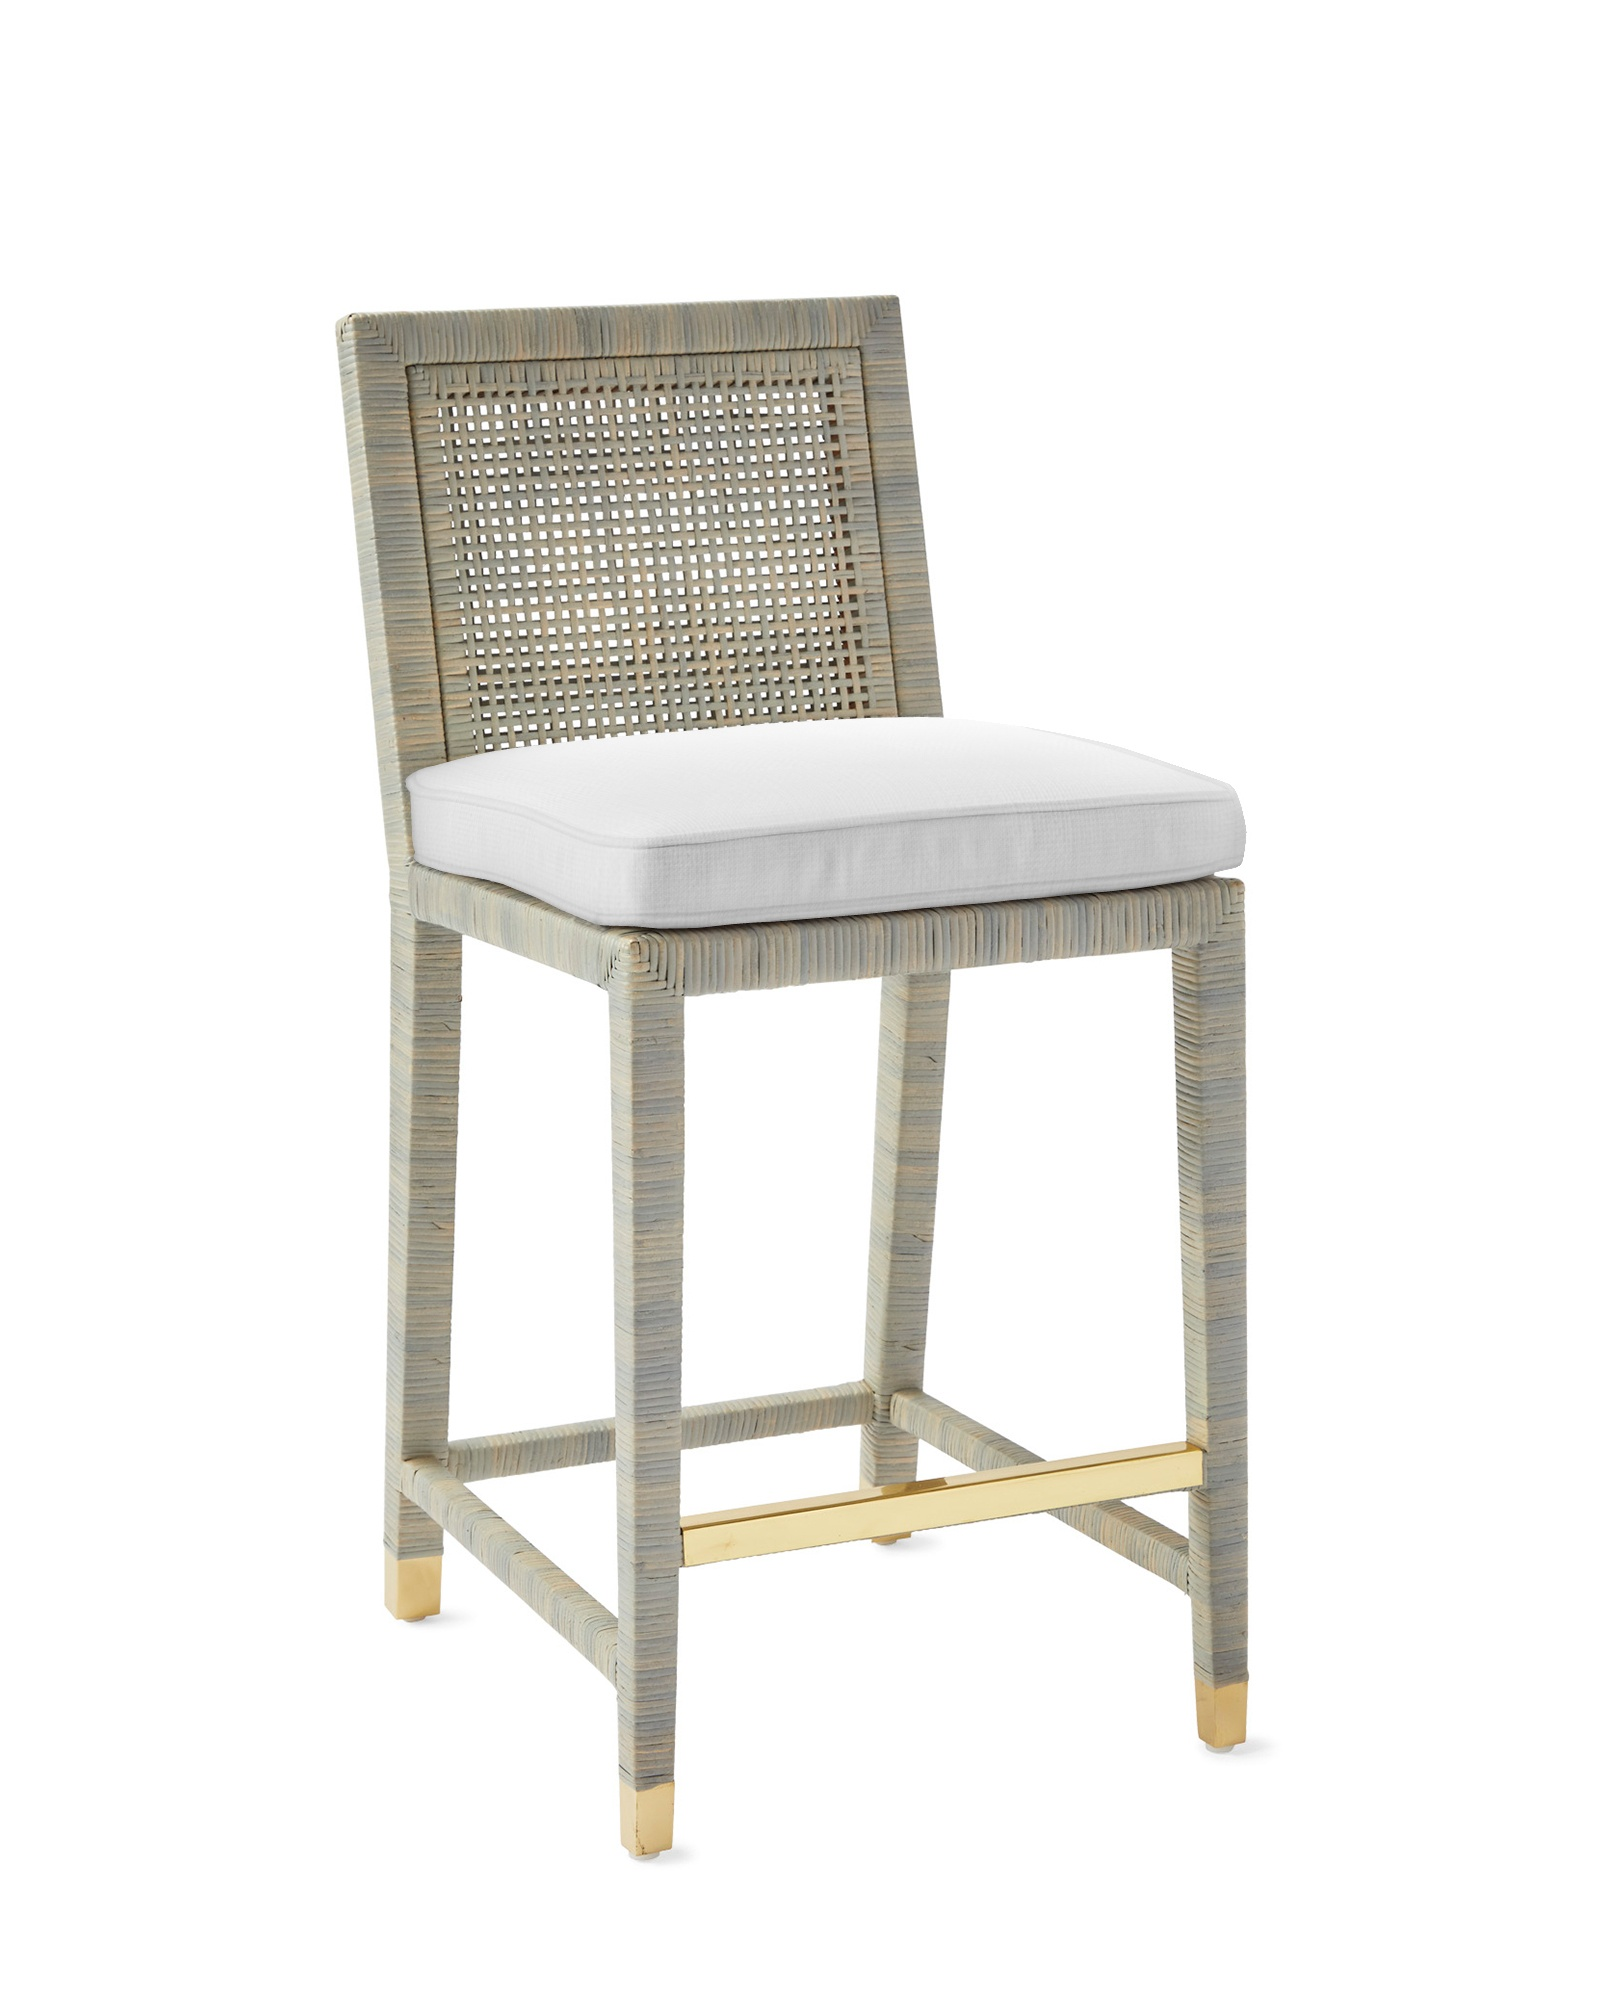 Cushion Cover for Balboa Counter Stool - Mist, Perennials Basketweave White